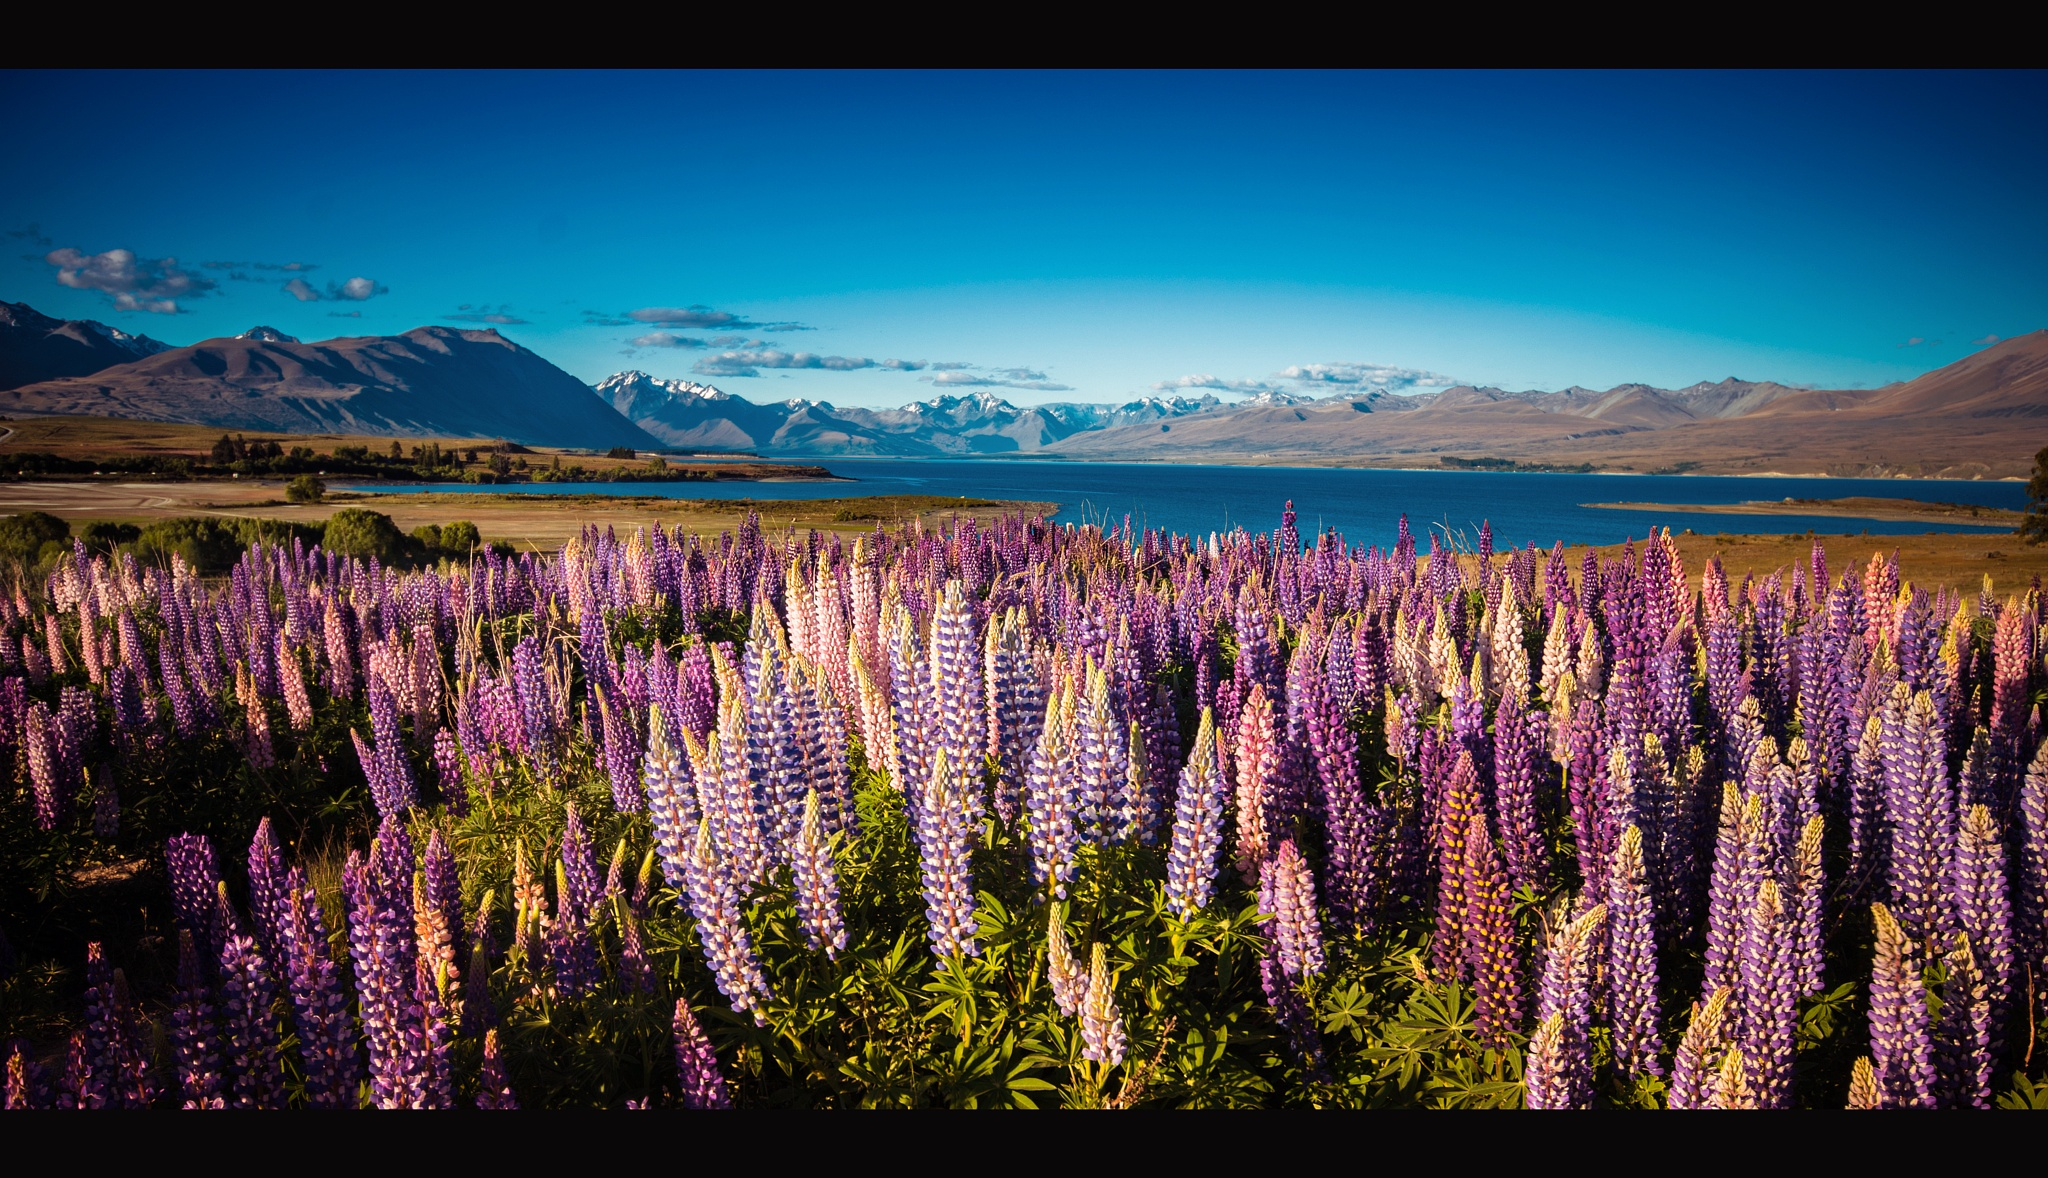 Lupins near Lake Alexandria by parvezkhaled